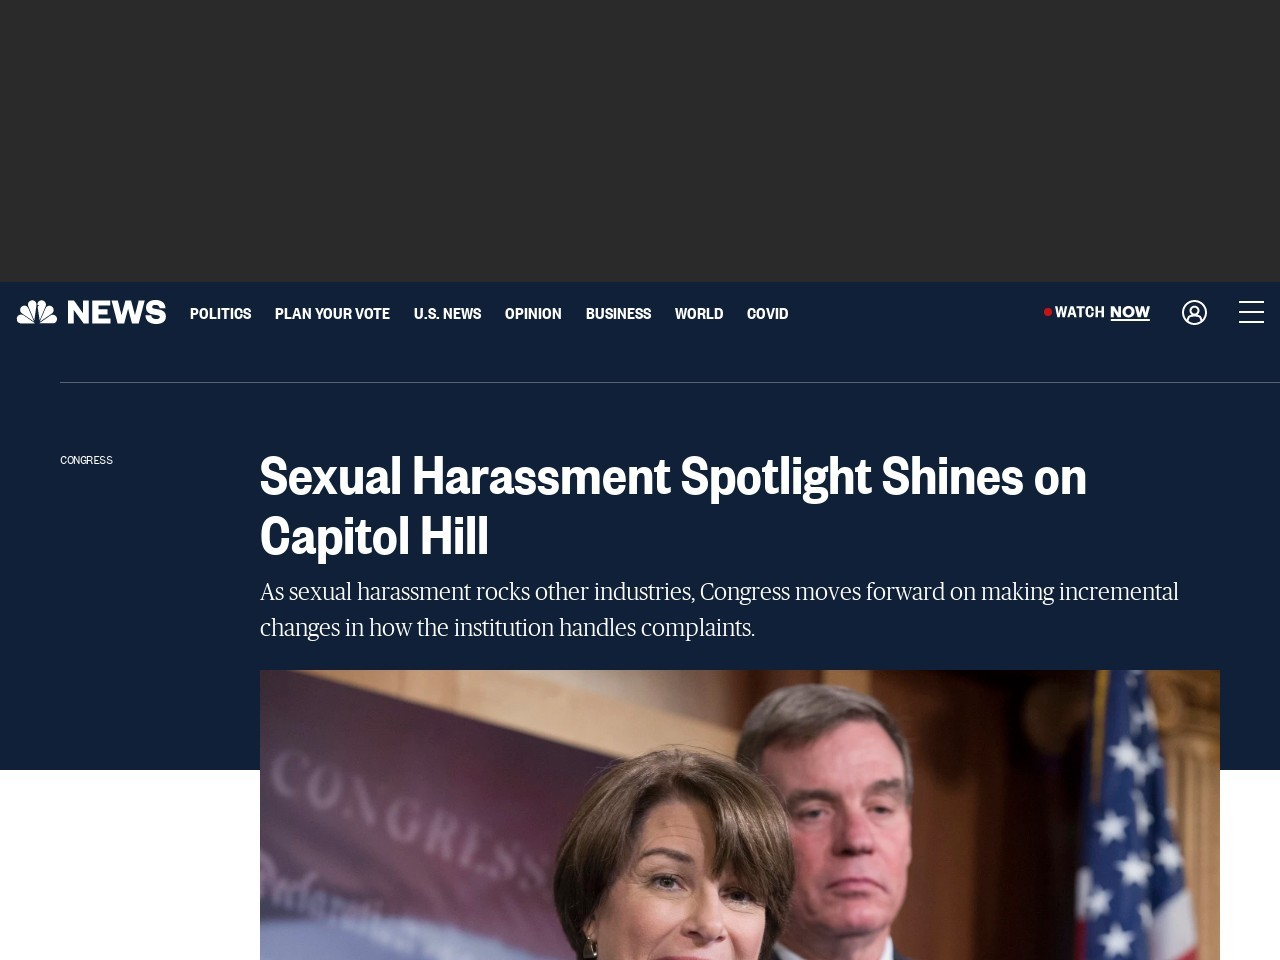 Sexual Harassment Spotlight Shines on Capitol Hill